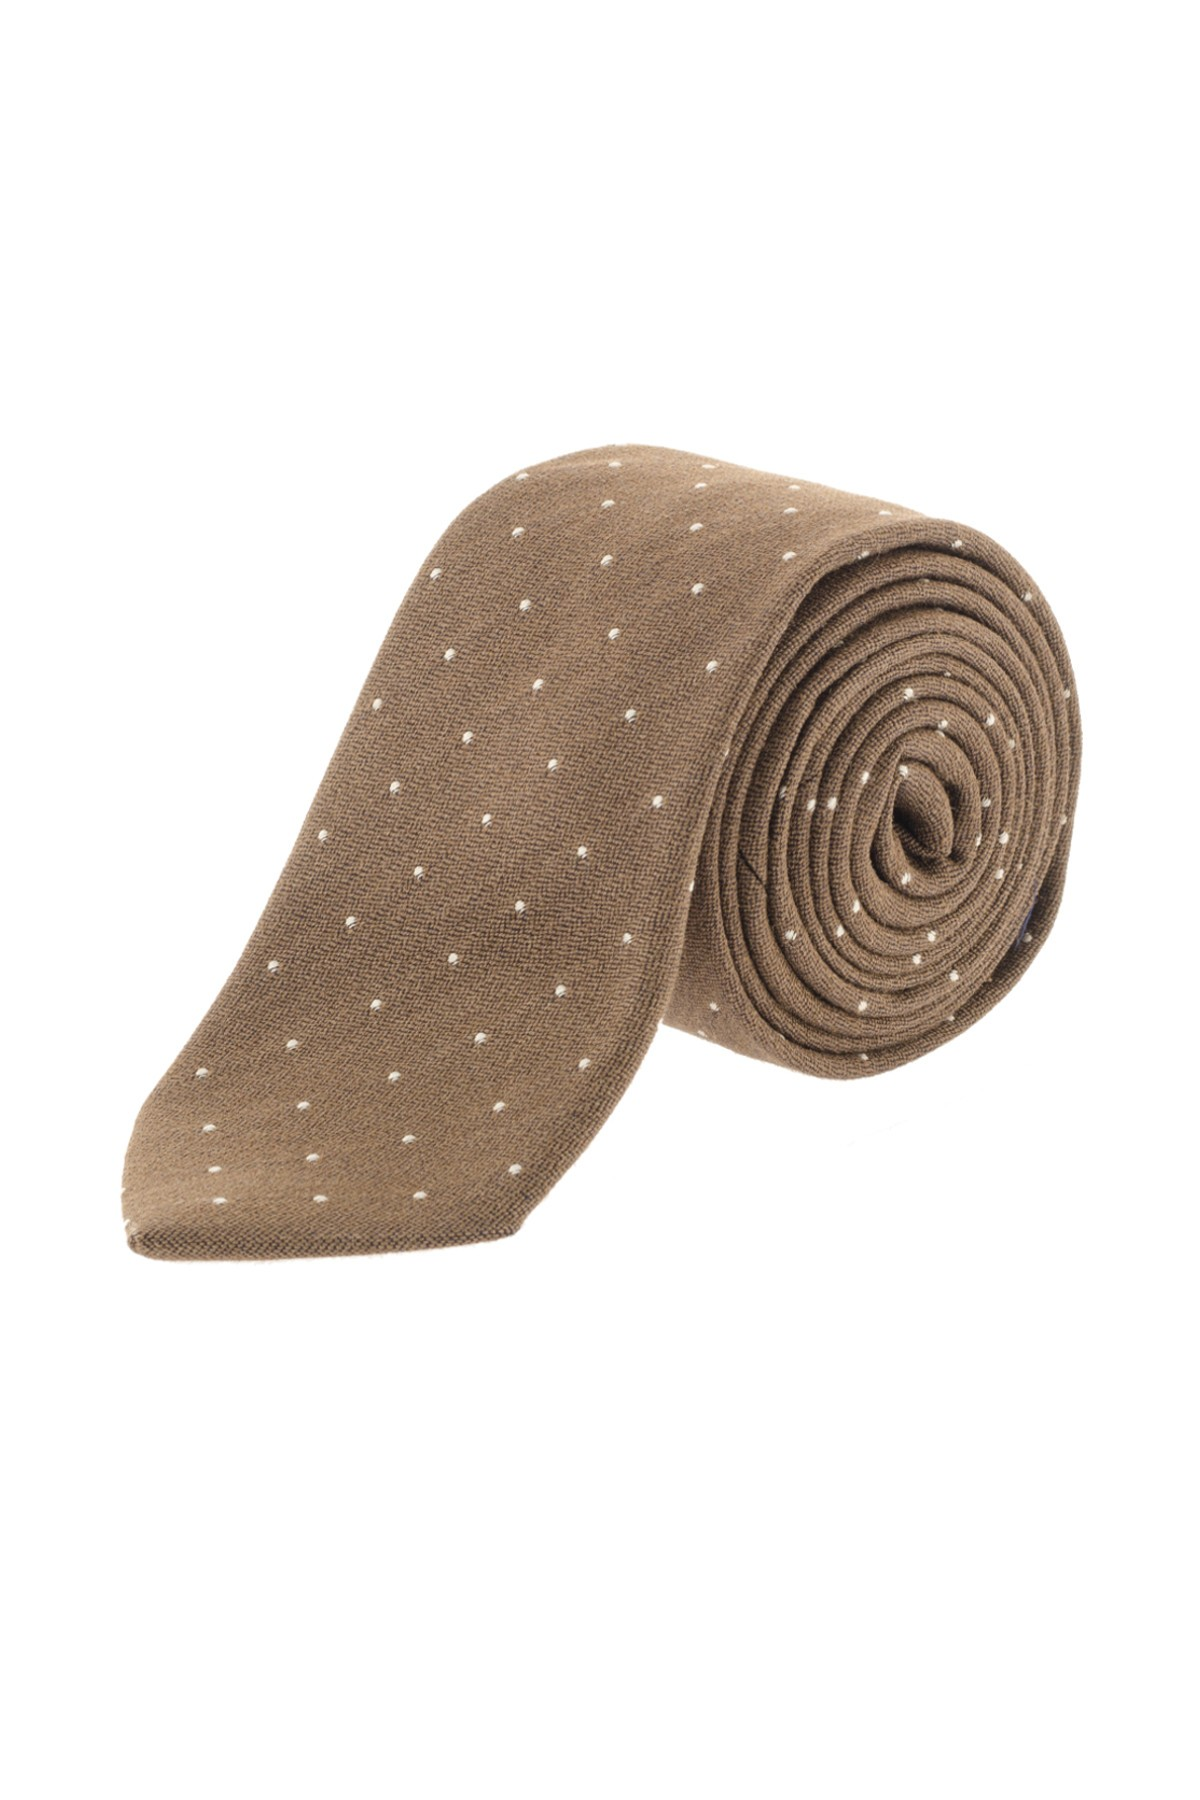 RIONE FONTANA Brown tie with white micro polka dots S/S 16 - Rione ...